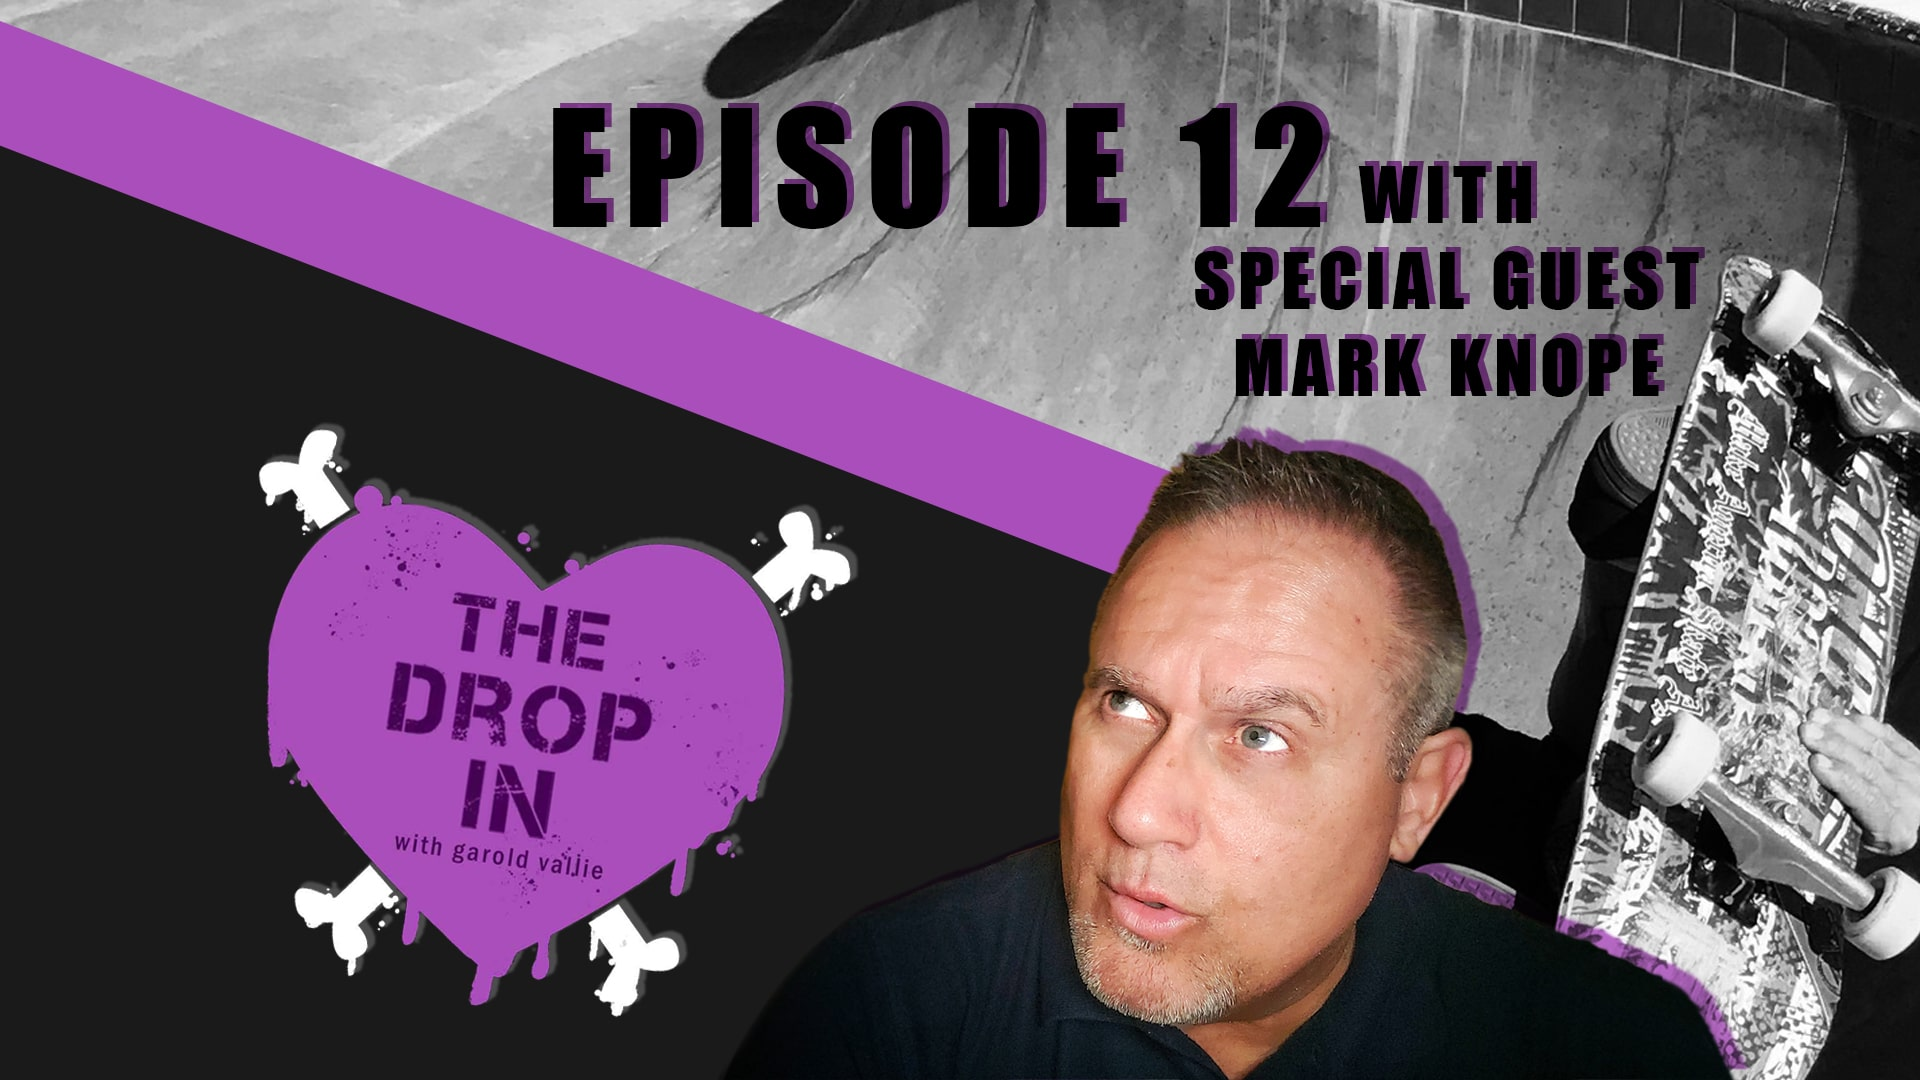 The Drop In with Garold Vallie - Episode 12 - Mark Knope